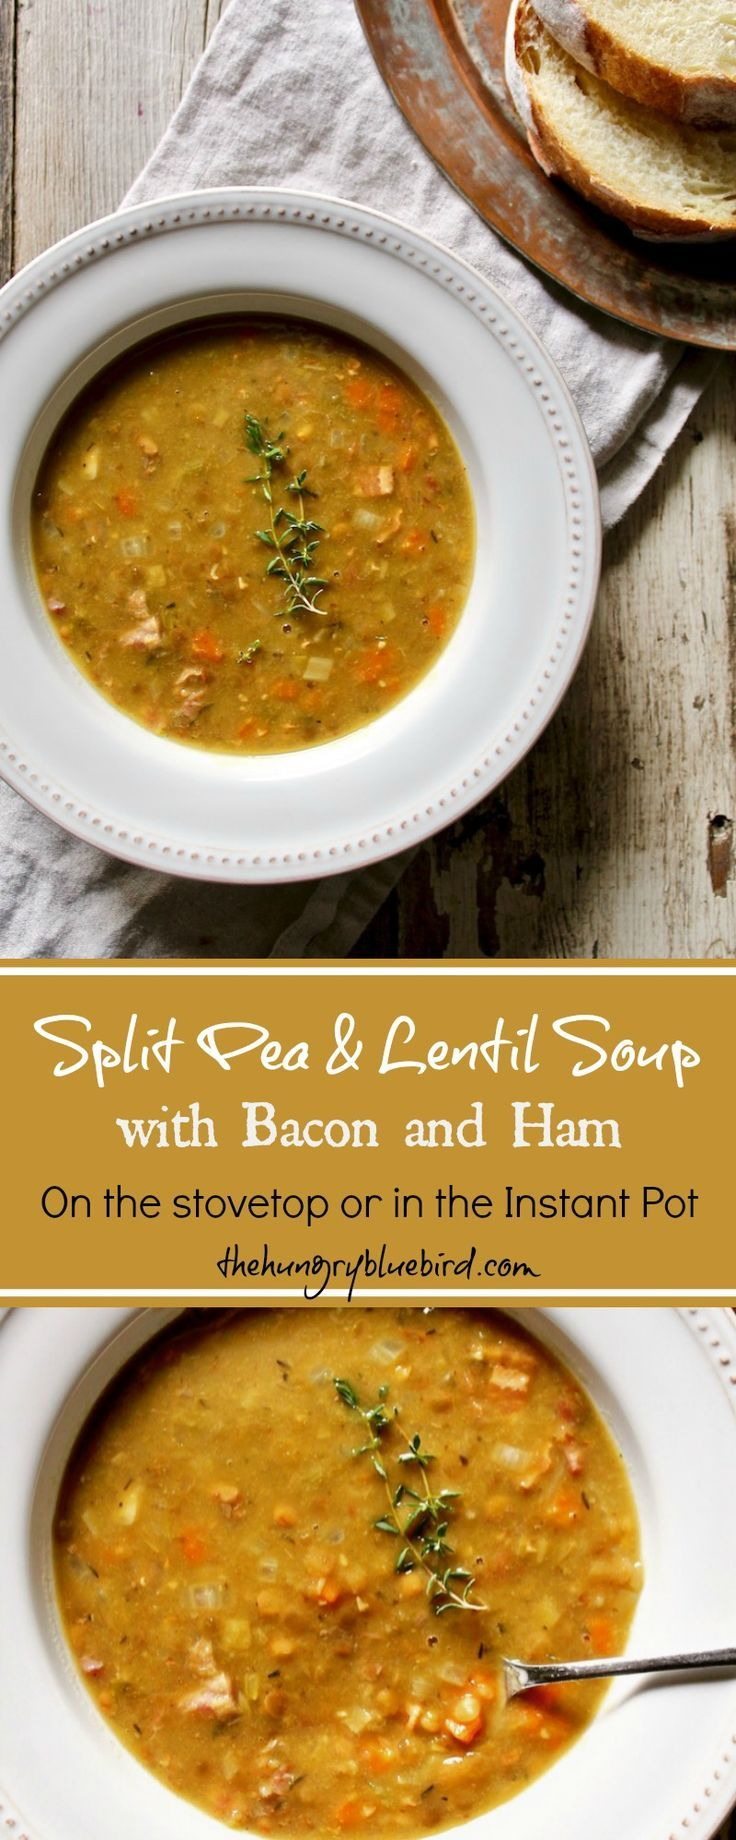 Comforting cool weather soup with split peas, lentils, bacon and ham. Easy to make on the stovetop or in the pressure cooker.